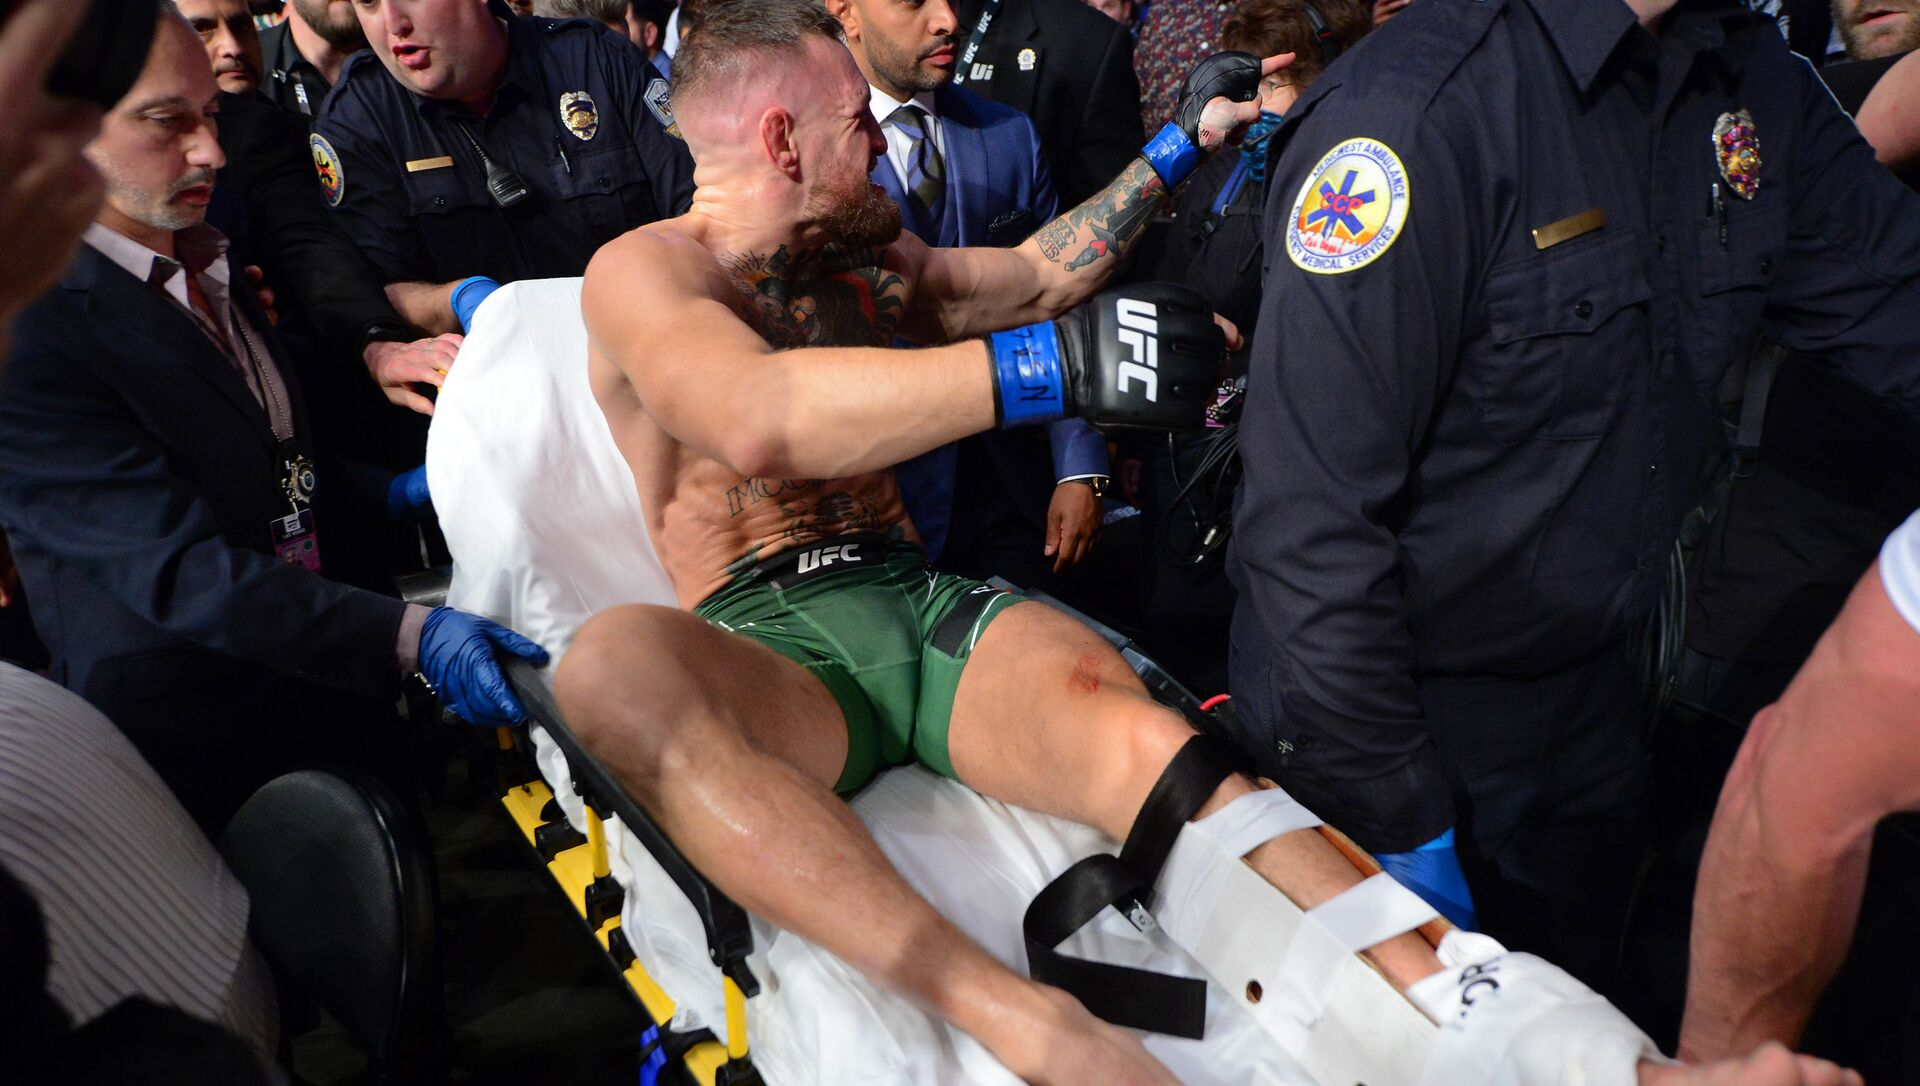 Jul 10, 2021; Las Vegas, Nevada, USA; Conor McGregor is carried off a stretcher following an injury suffered against Dustin Poirier during UFC 264 at T-Mobile Arena. - Sputnik International, 1920, 02.08.2021